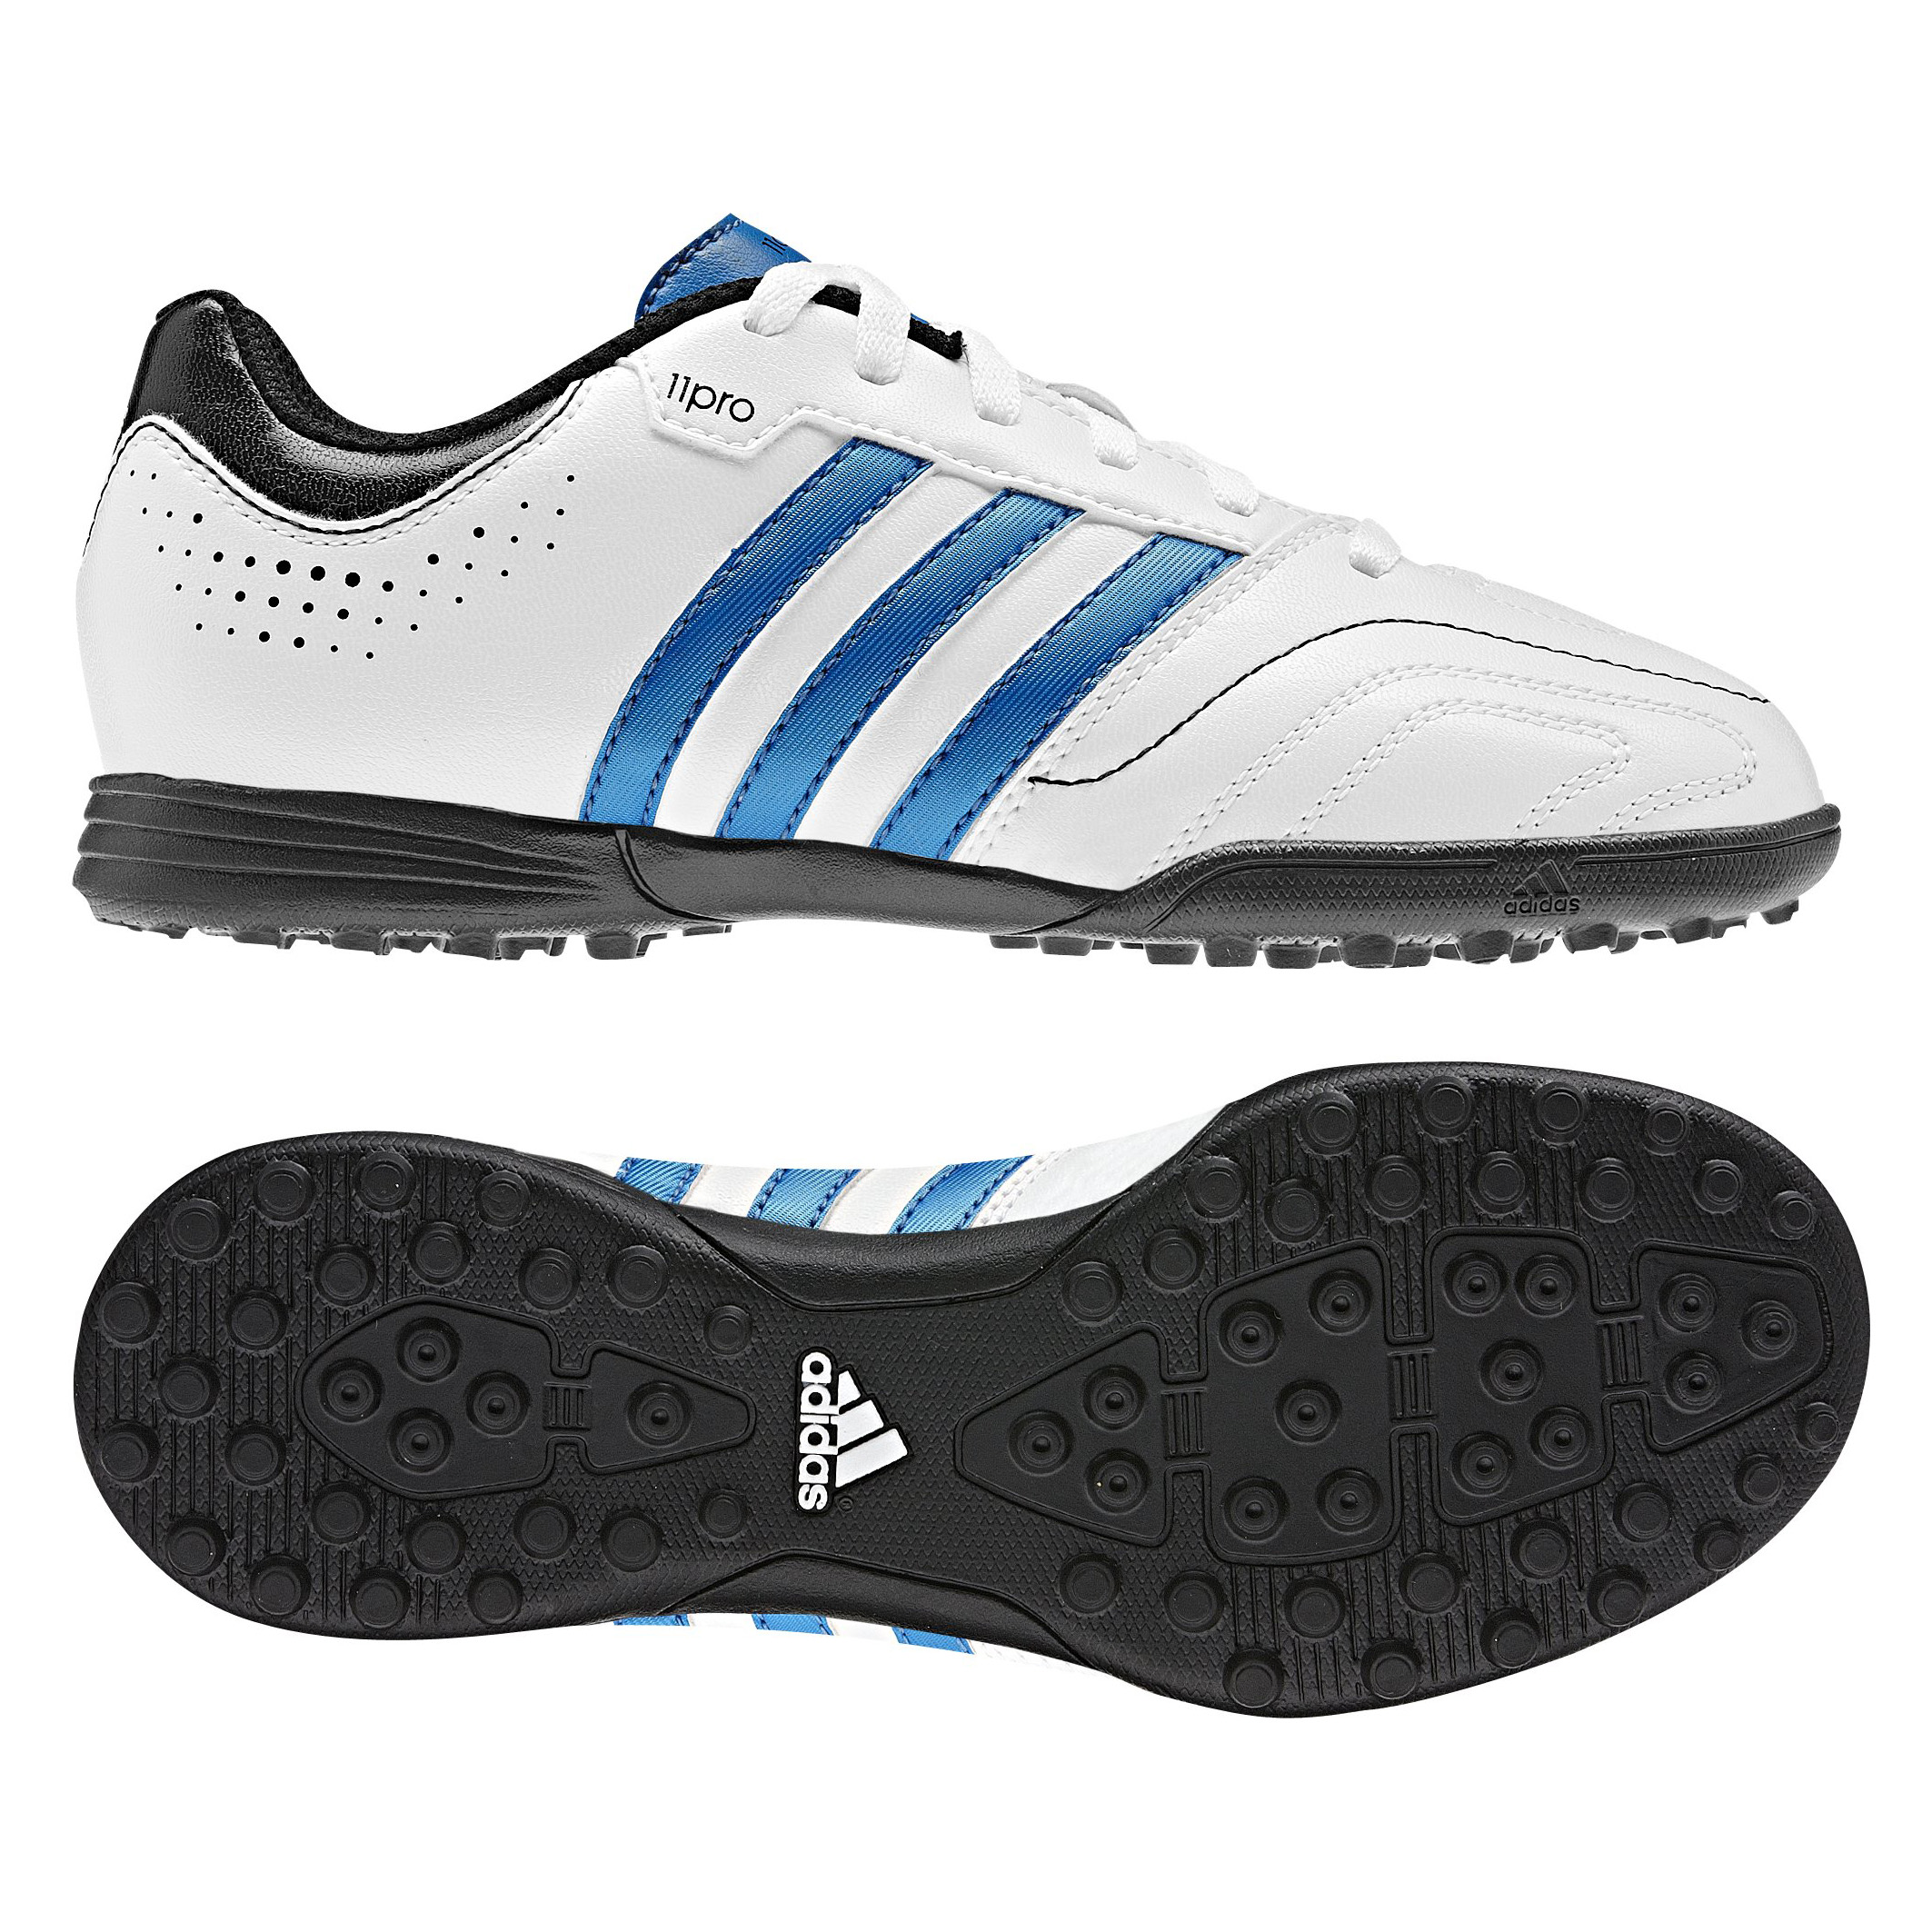 Adidas 11Questra TRX Astro Turf Trainers - Running White/Bright Blue/Black - Kids